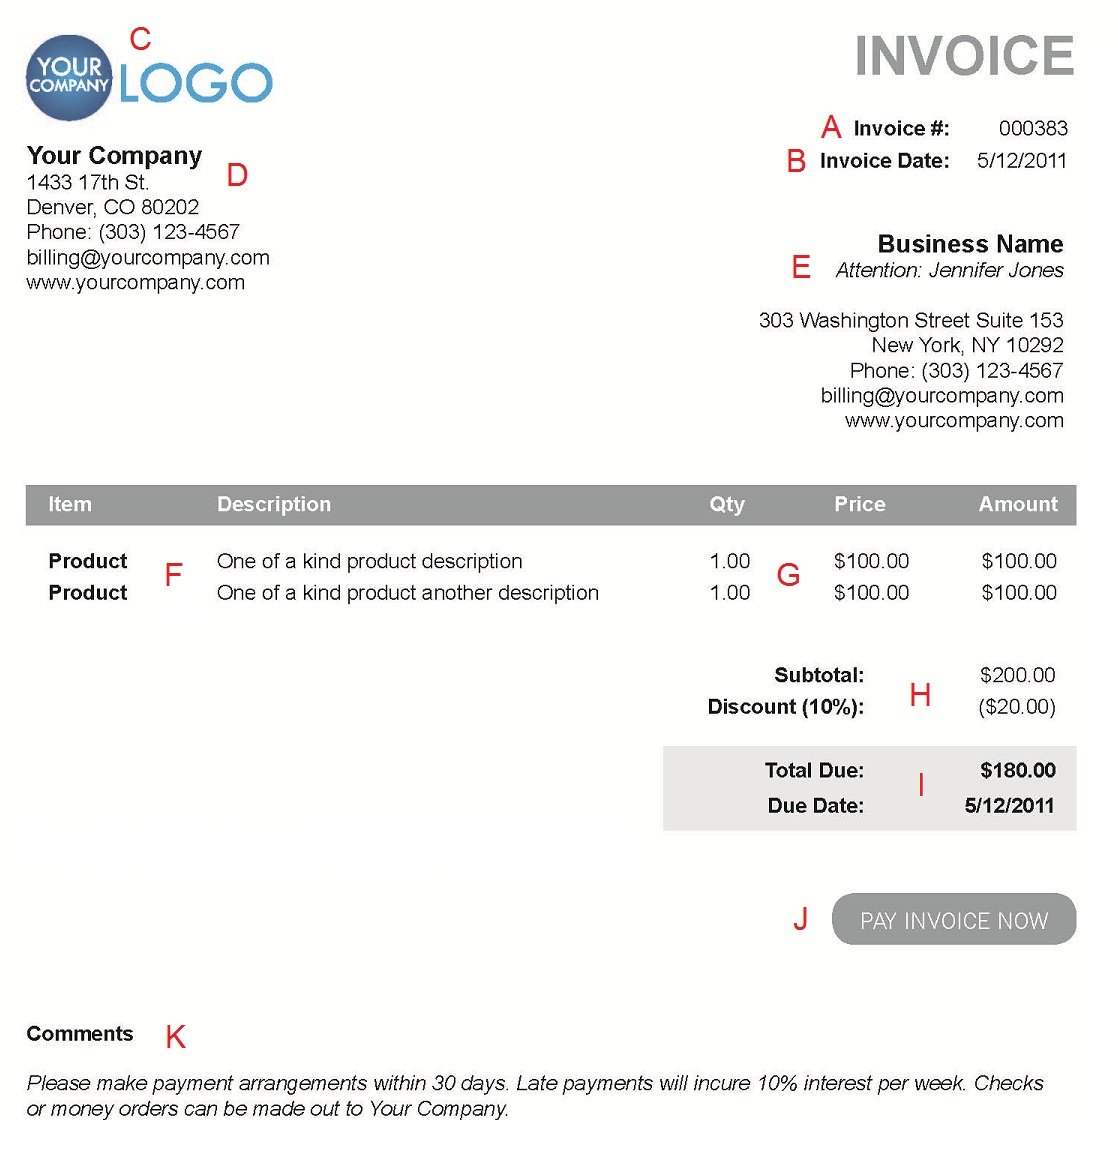 Reliefworkersus  Terrific The  Different Sections Of An Electronic Payment Invoice With Great A  With Extraordinary Receipt Of Payment Letter Also Amazon Return Without Receipt In Addition Babies R Us Return Policy No Receipt And Hotel Receipts As Well As Receipt For Check Additionally How To Create A Receipt From Paysimplecom With Reliefworkersus  Great The  Different Sections Of An Electronic Payment Invoice With Extraordinary A  And Terrific Receipt Of Payment Letter Also Amazon Return Without Receipt In Addition Babies R Us Return Policy No Receipt From Paysimplecom